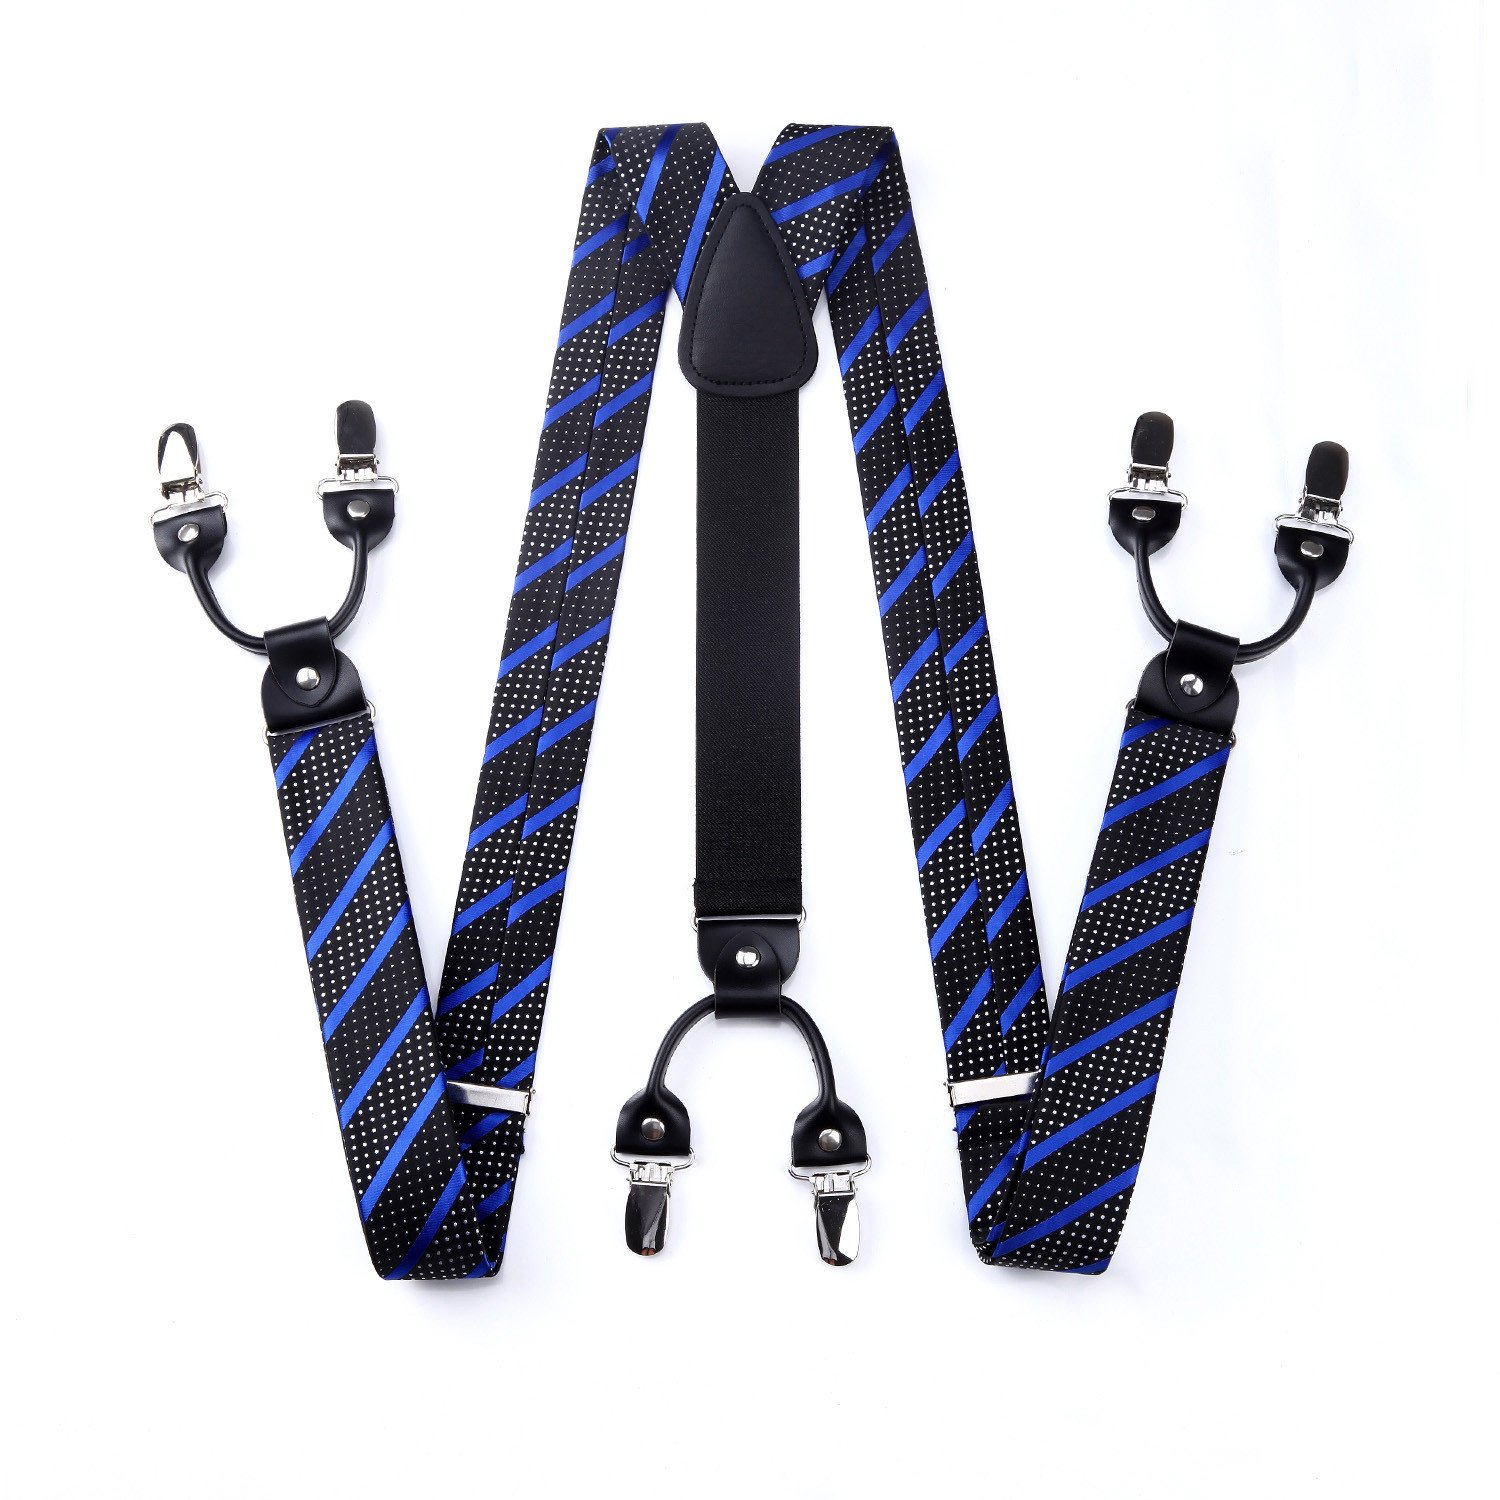 HISDERN Various Classic 6 Clips Suspenders /& Bow Tie and Pocket Square Set Y Shape Adjustable Braces Purple /& Blue One Size SC4008PS3